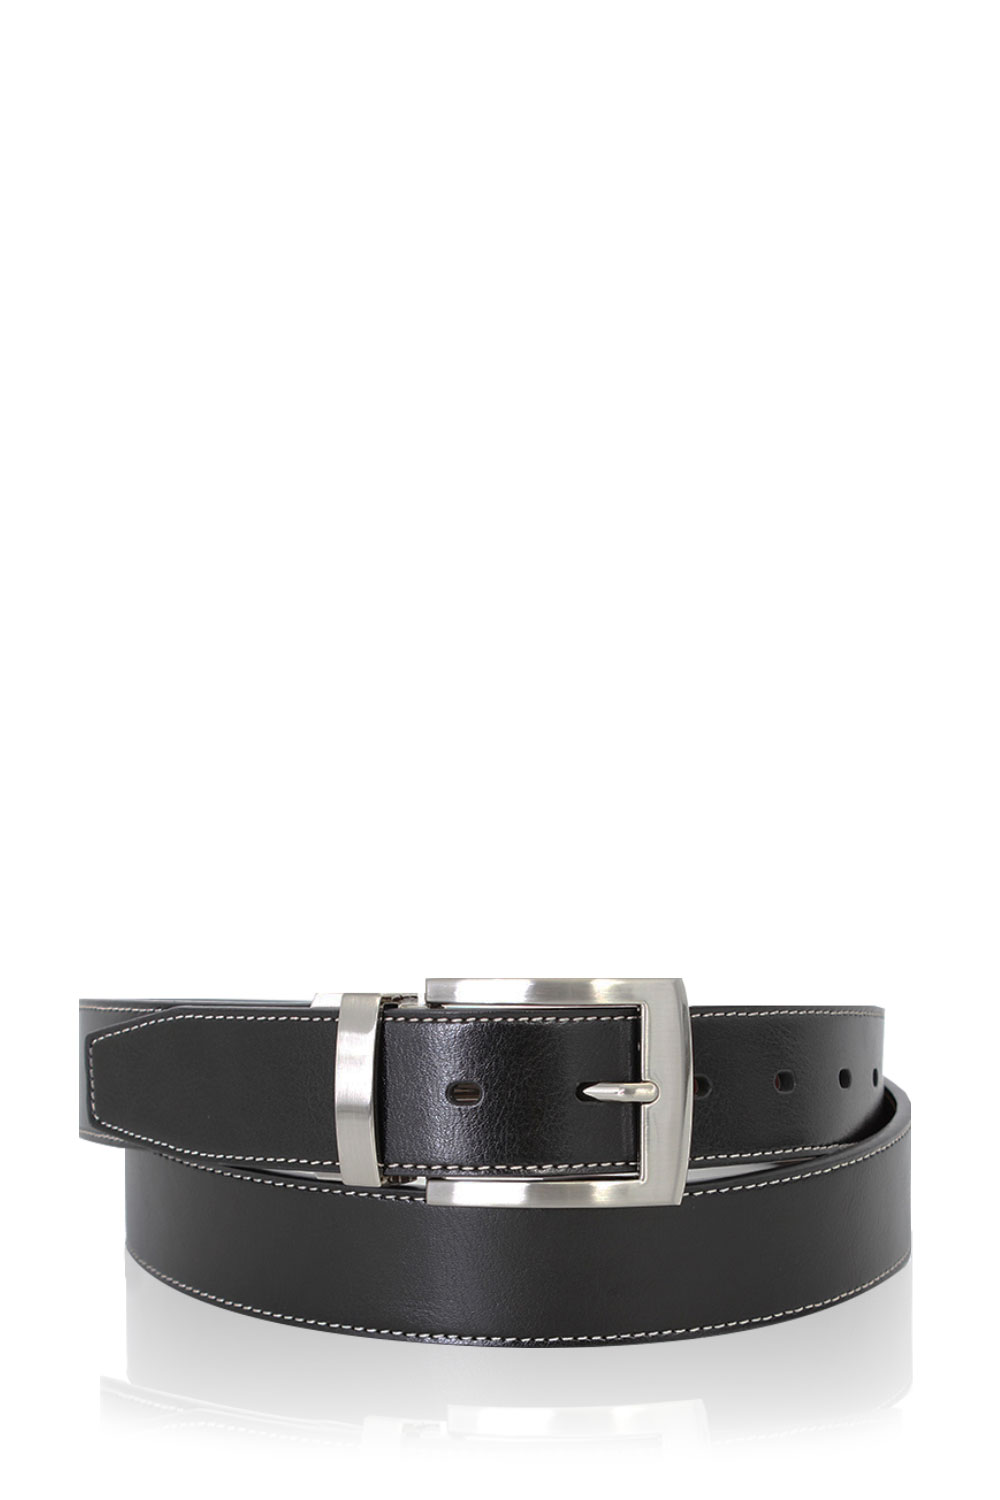 Mens Single Stitch Dressy Leather Belt XX-Large Black